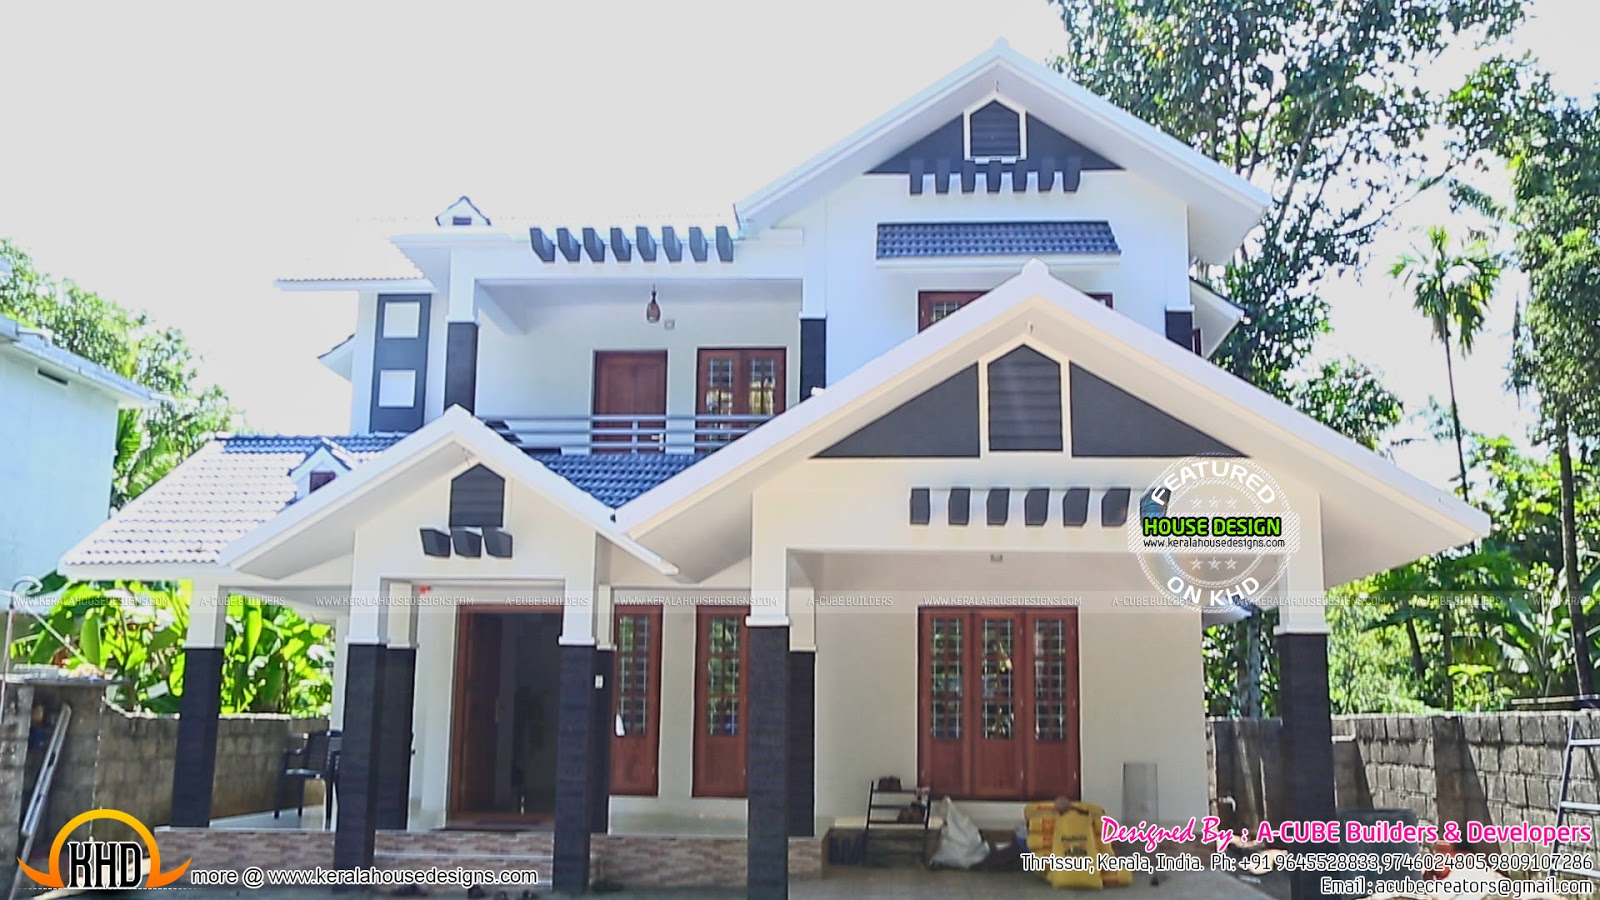 New house plans for 2016 starts here kerala home design and floor plans Home interior design ideas 2016